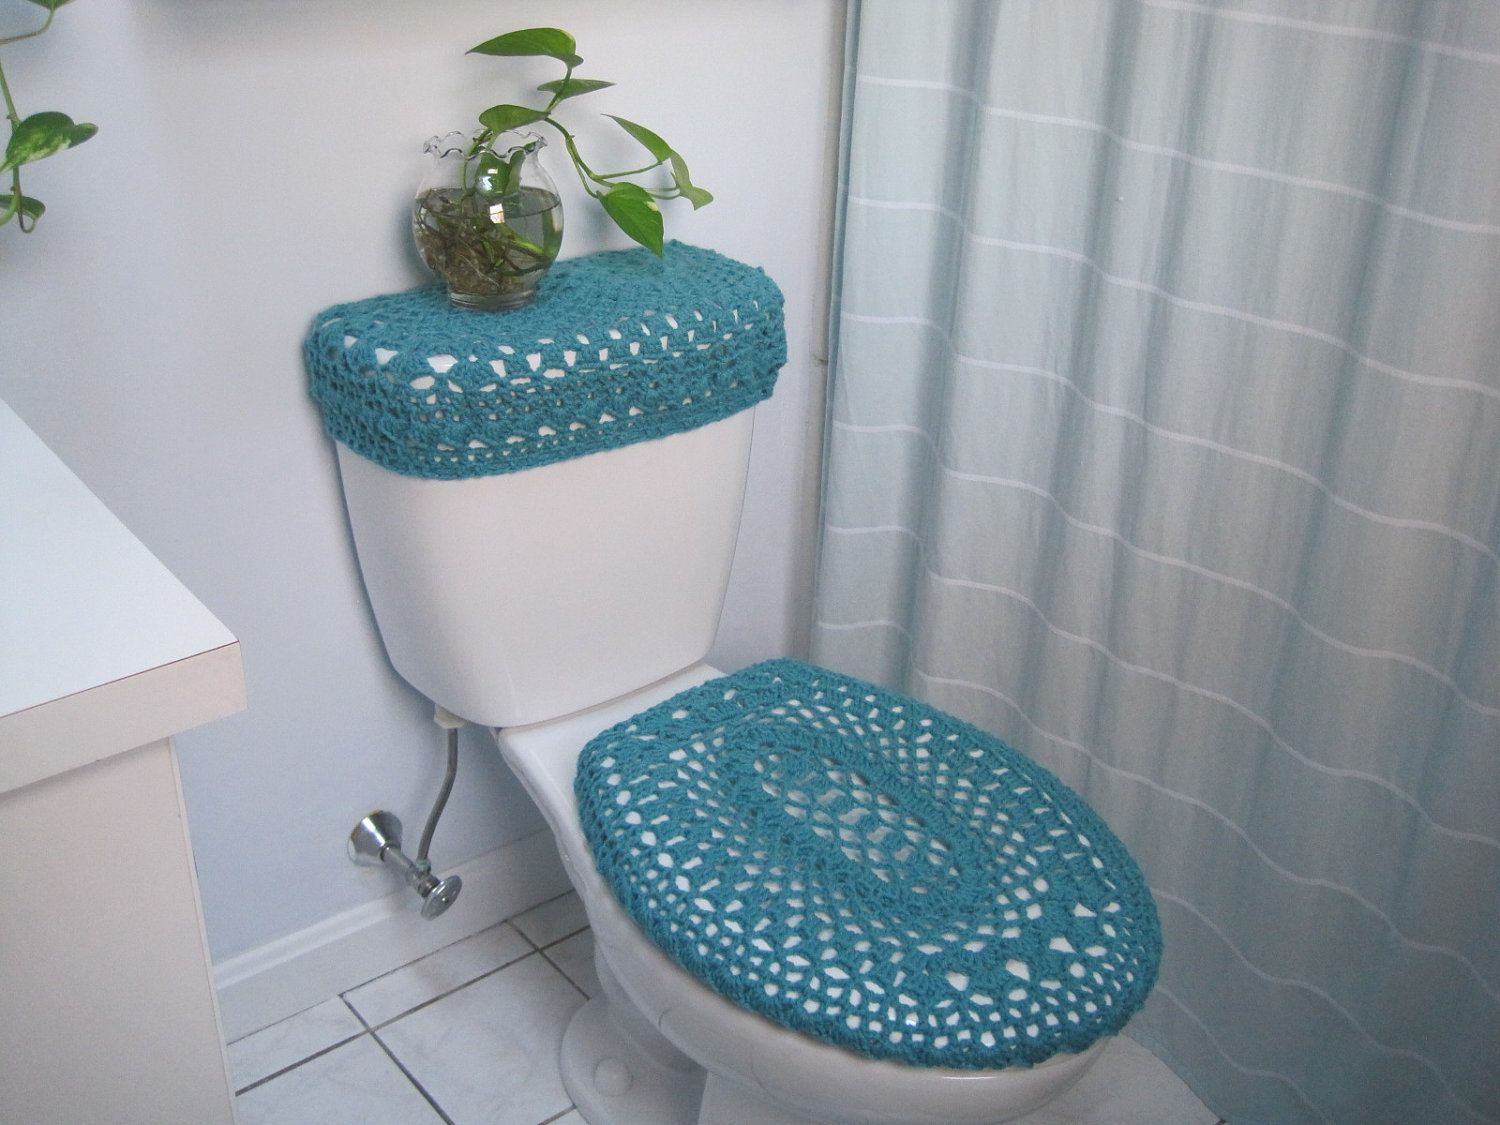 Marvelous Set Of 2 Crochet Covers For Toilet Seat U0026 Toilet Tank Lid, Cozies   Aqua